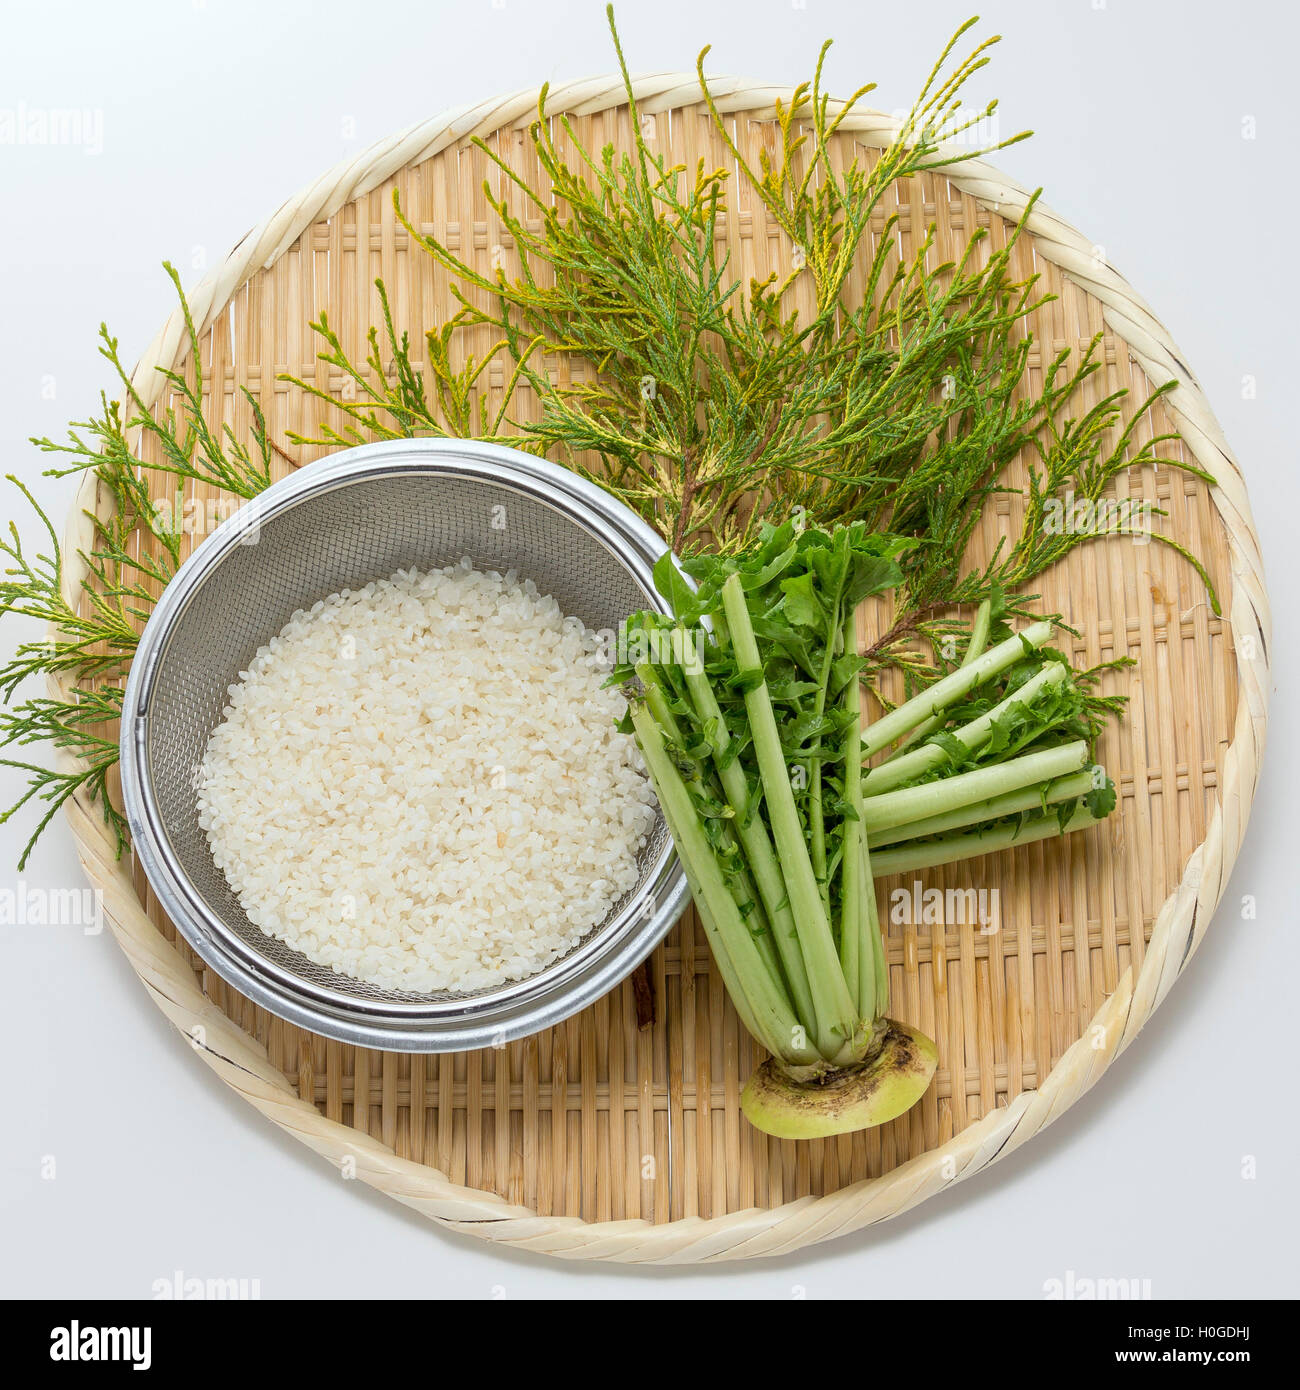 Rice with white radish leaves and herbs on bamboo tray - Stock Image